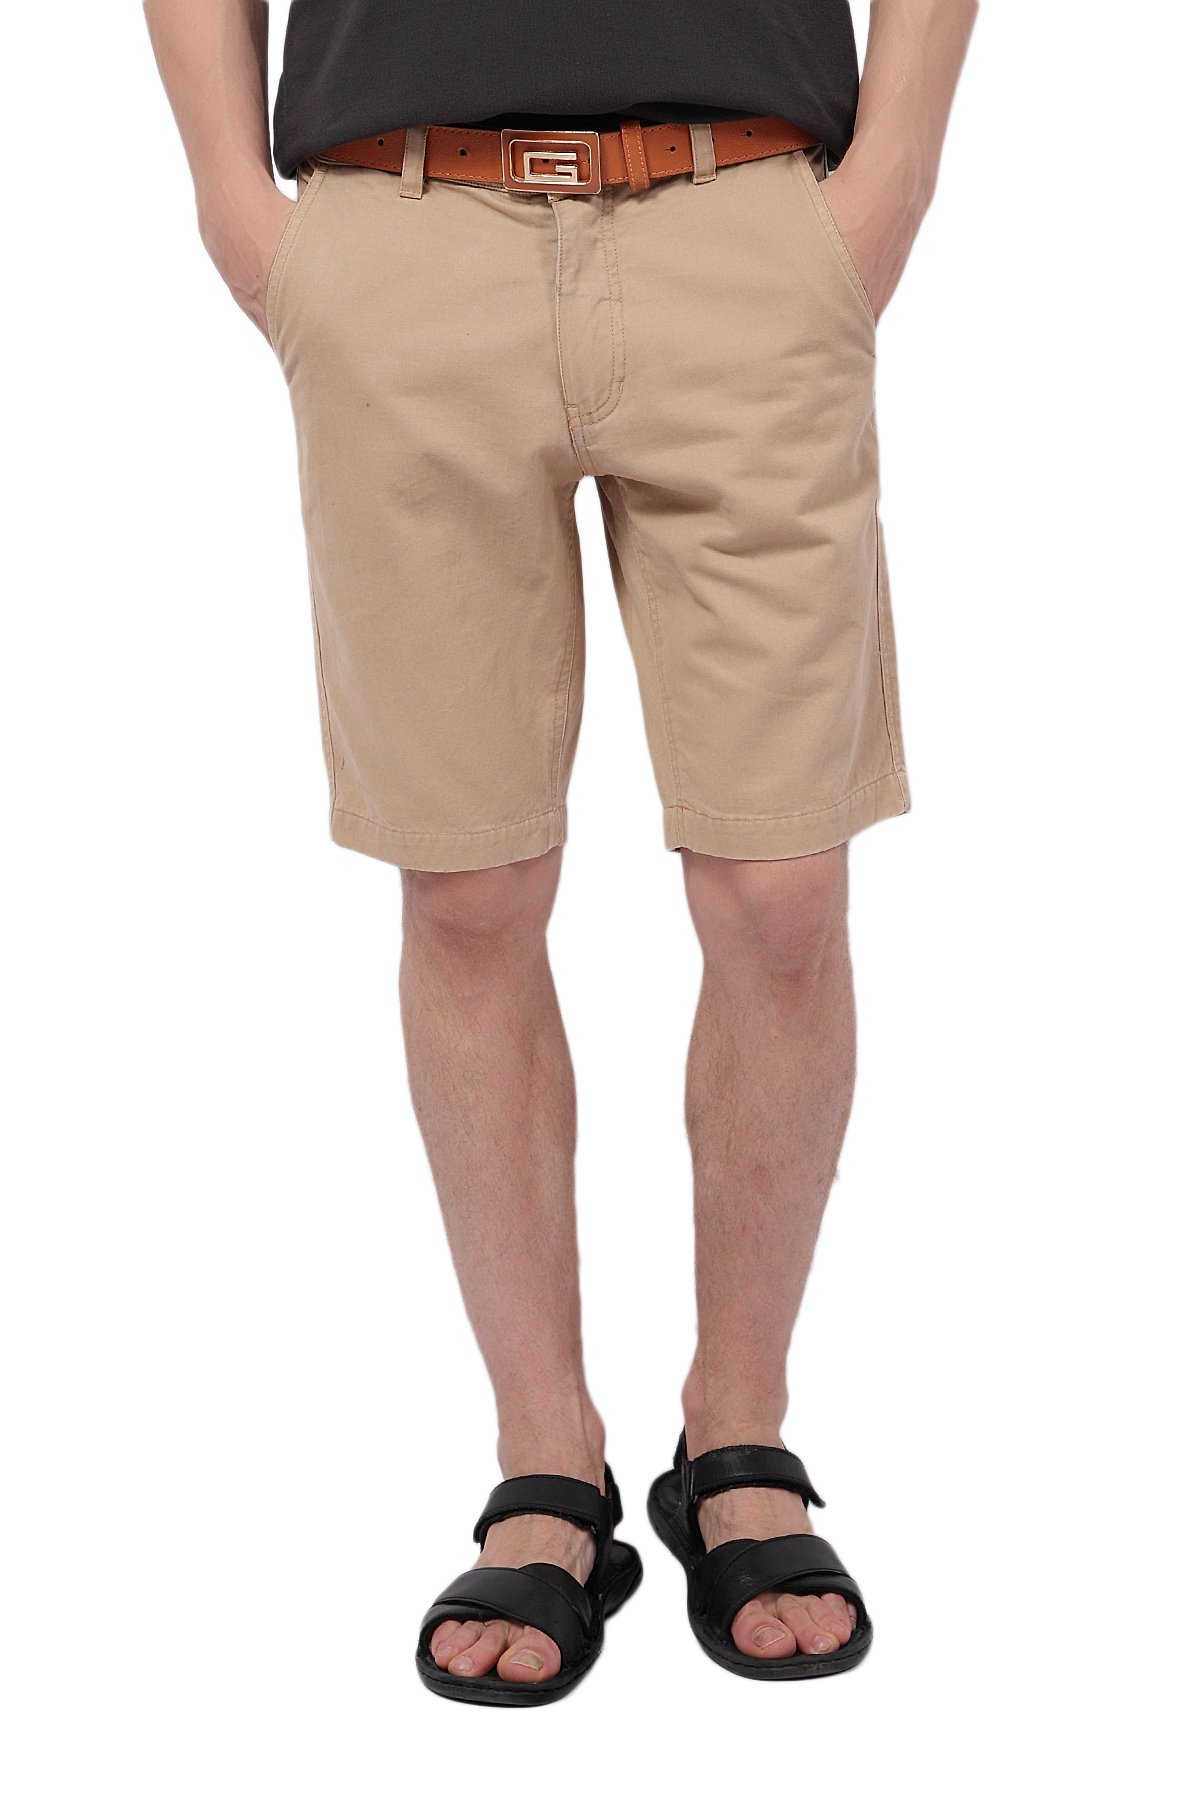 Pau1Hami1ton PH-01 Men's 10'' Inseam Chino Shorts Slim Fit Flat Front Peached Twill Casual Pants(36 Khaki)